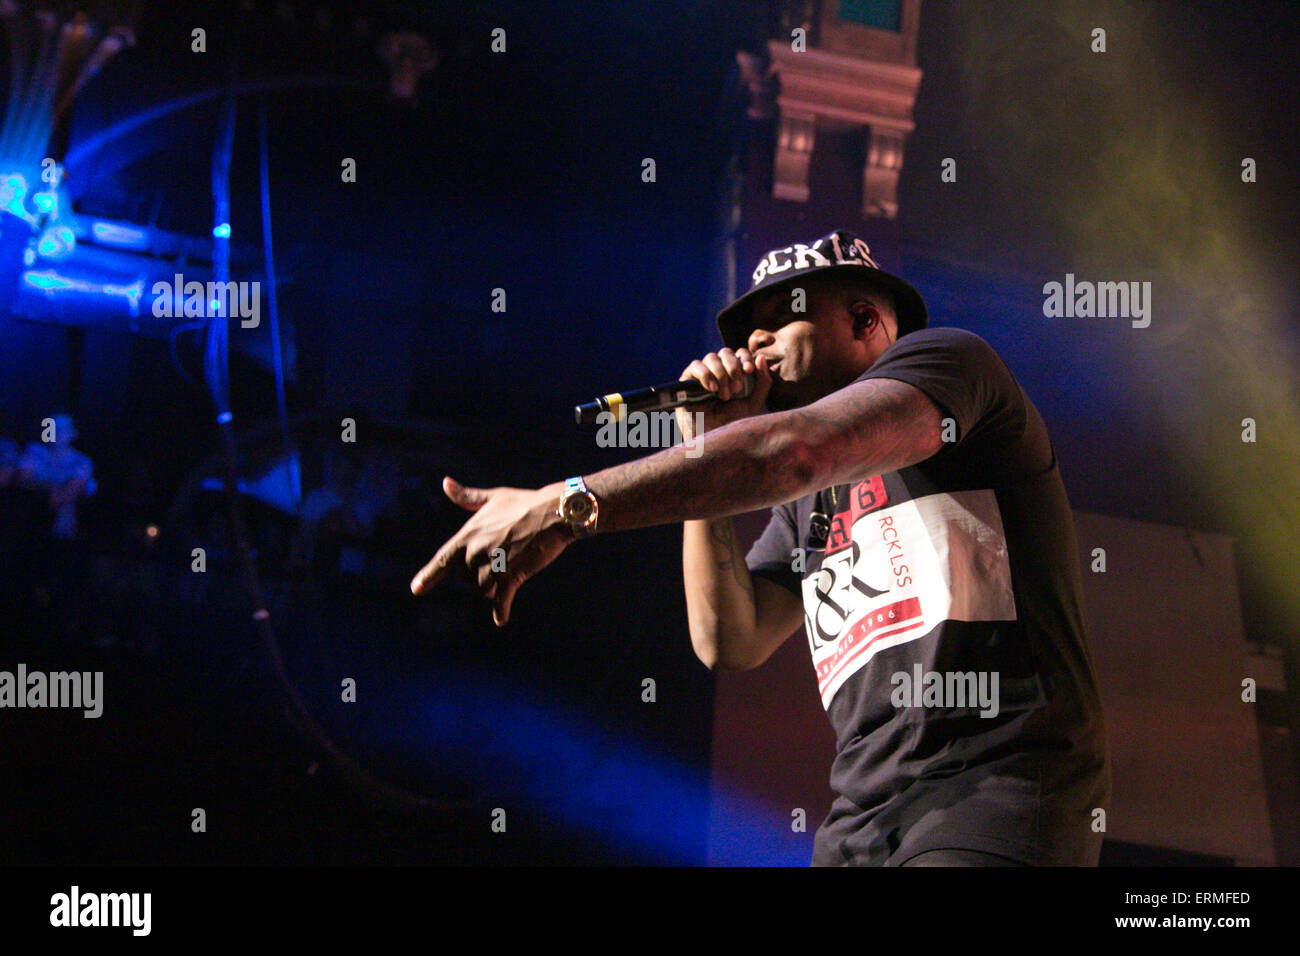 Birmingham, UK, 04 June 2015, Nas Performs 'Illmatic' at the Birmingham leg of his UK Tour, in Birmingham. - Stock Image